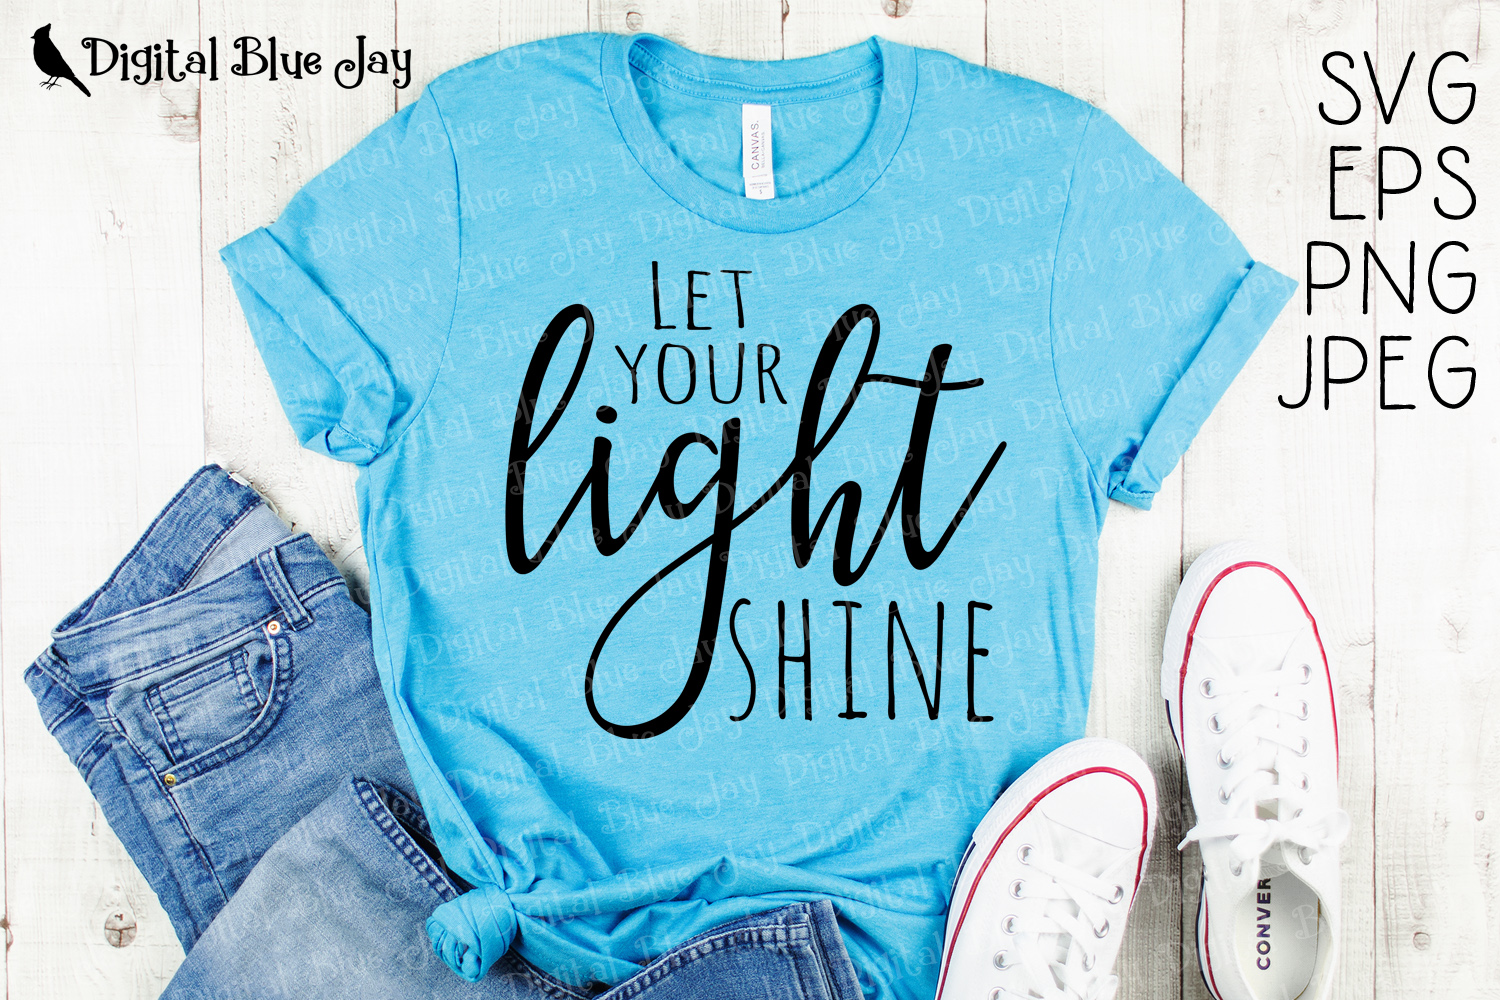 Let Your Light Shine Christian SVG PNG Cut Files example image 1